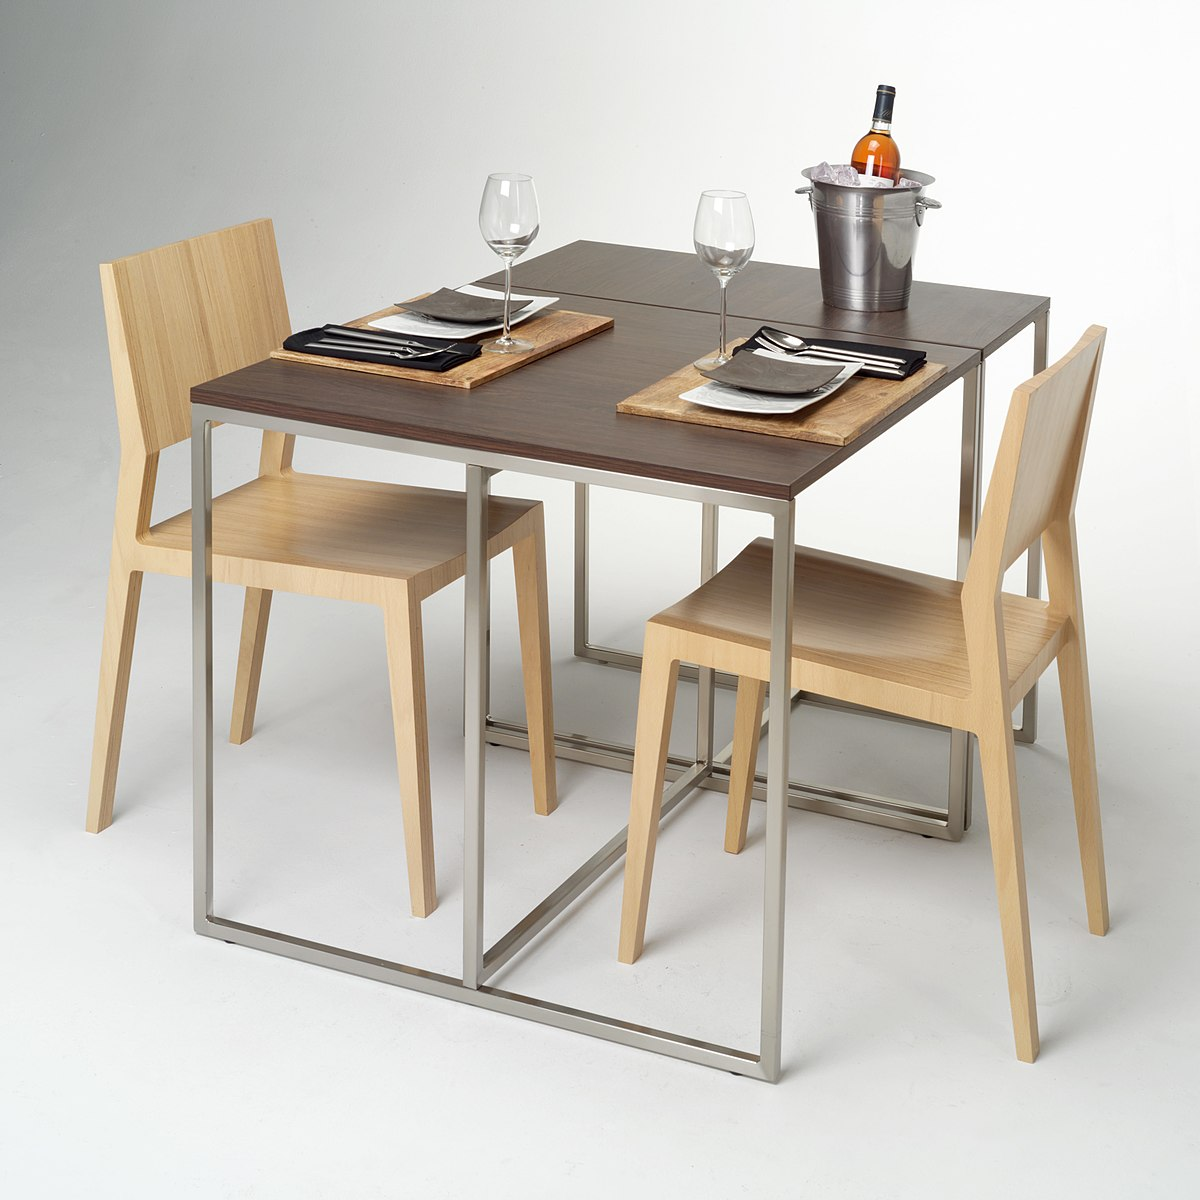 Furniture wikipedia for Small dining room table and two chairs